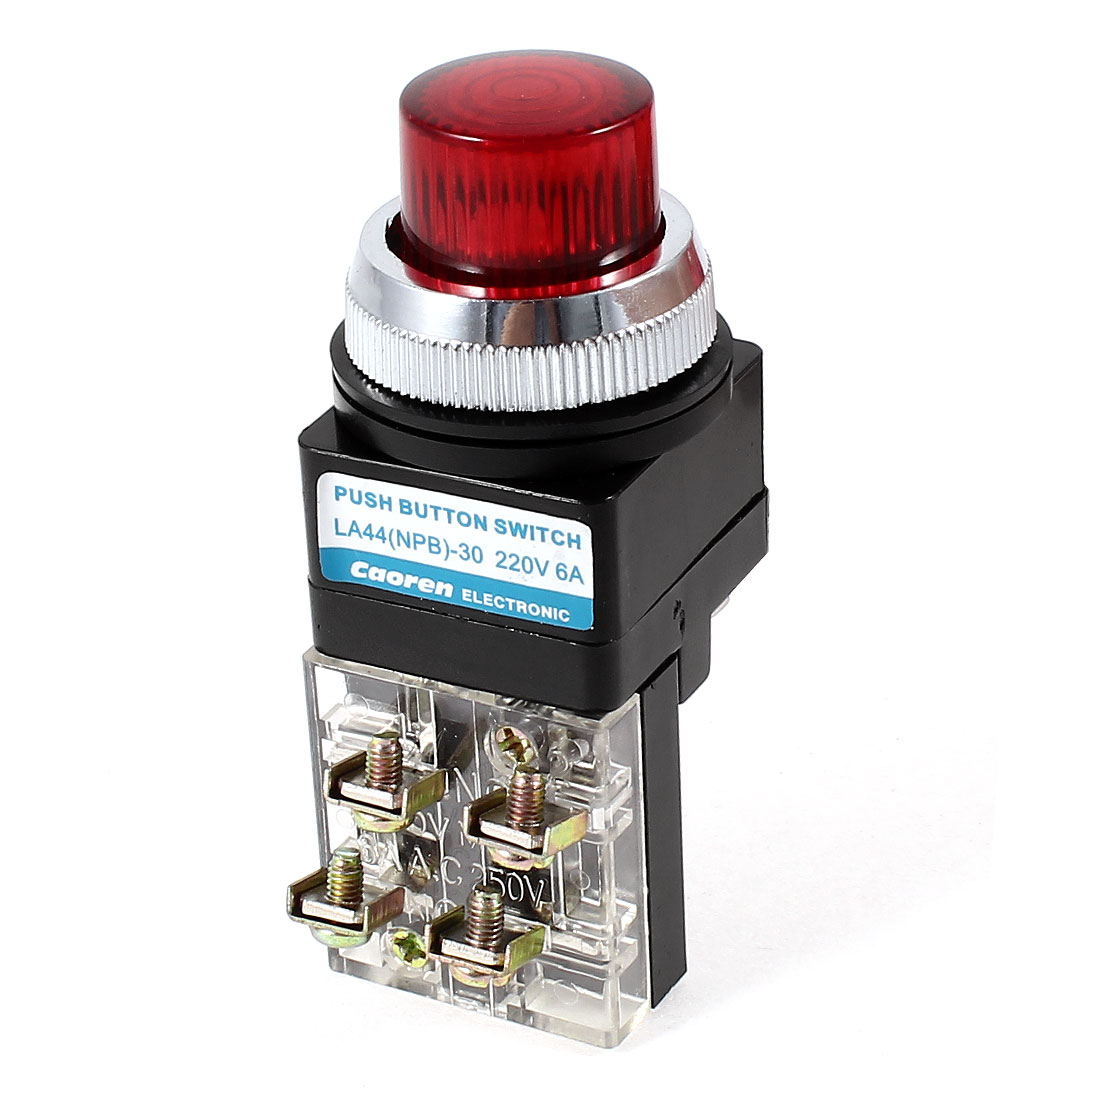 Ui 600V Ith 6A DPST 1NO 1NC Momentary Type Red Indicator Lamp Push Button Switch